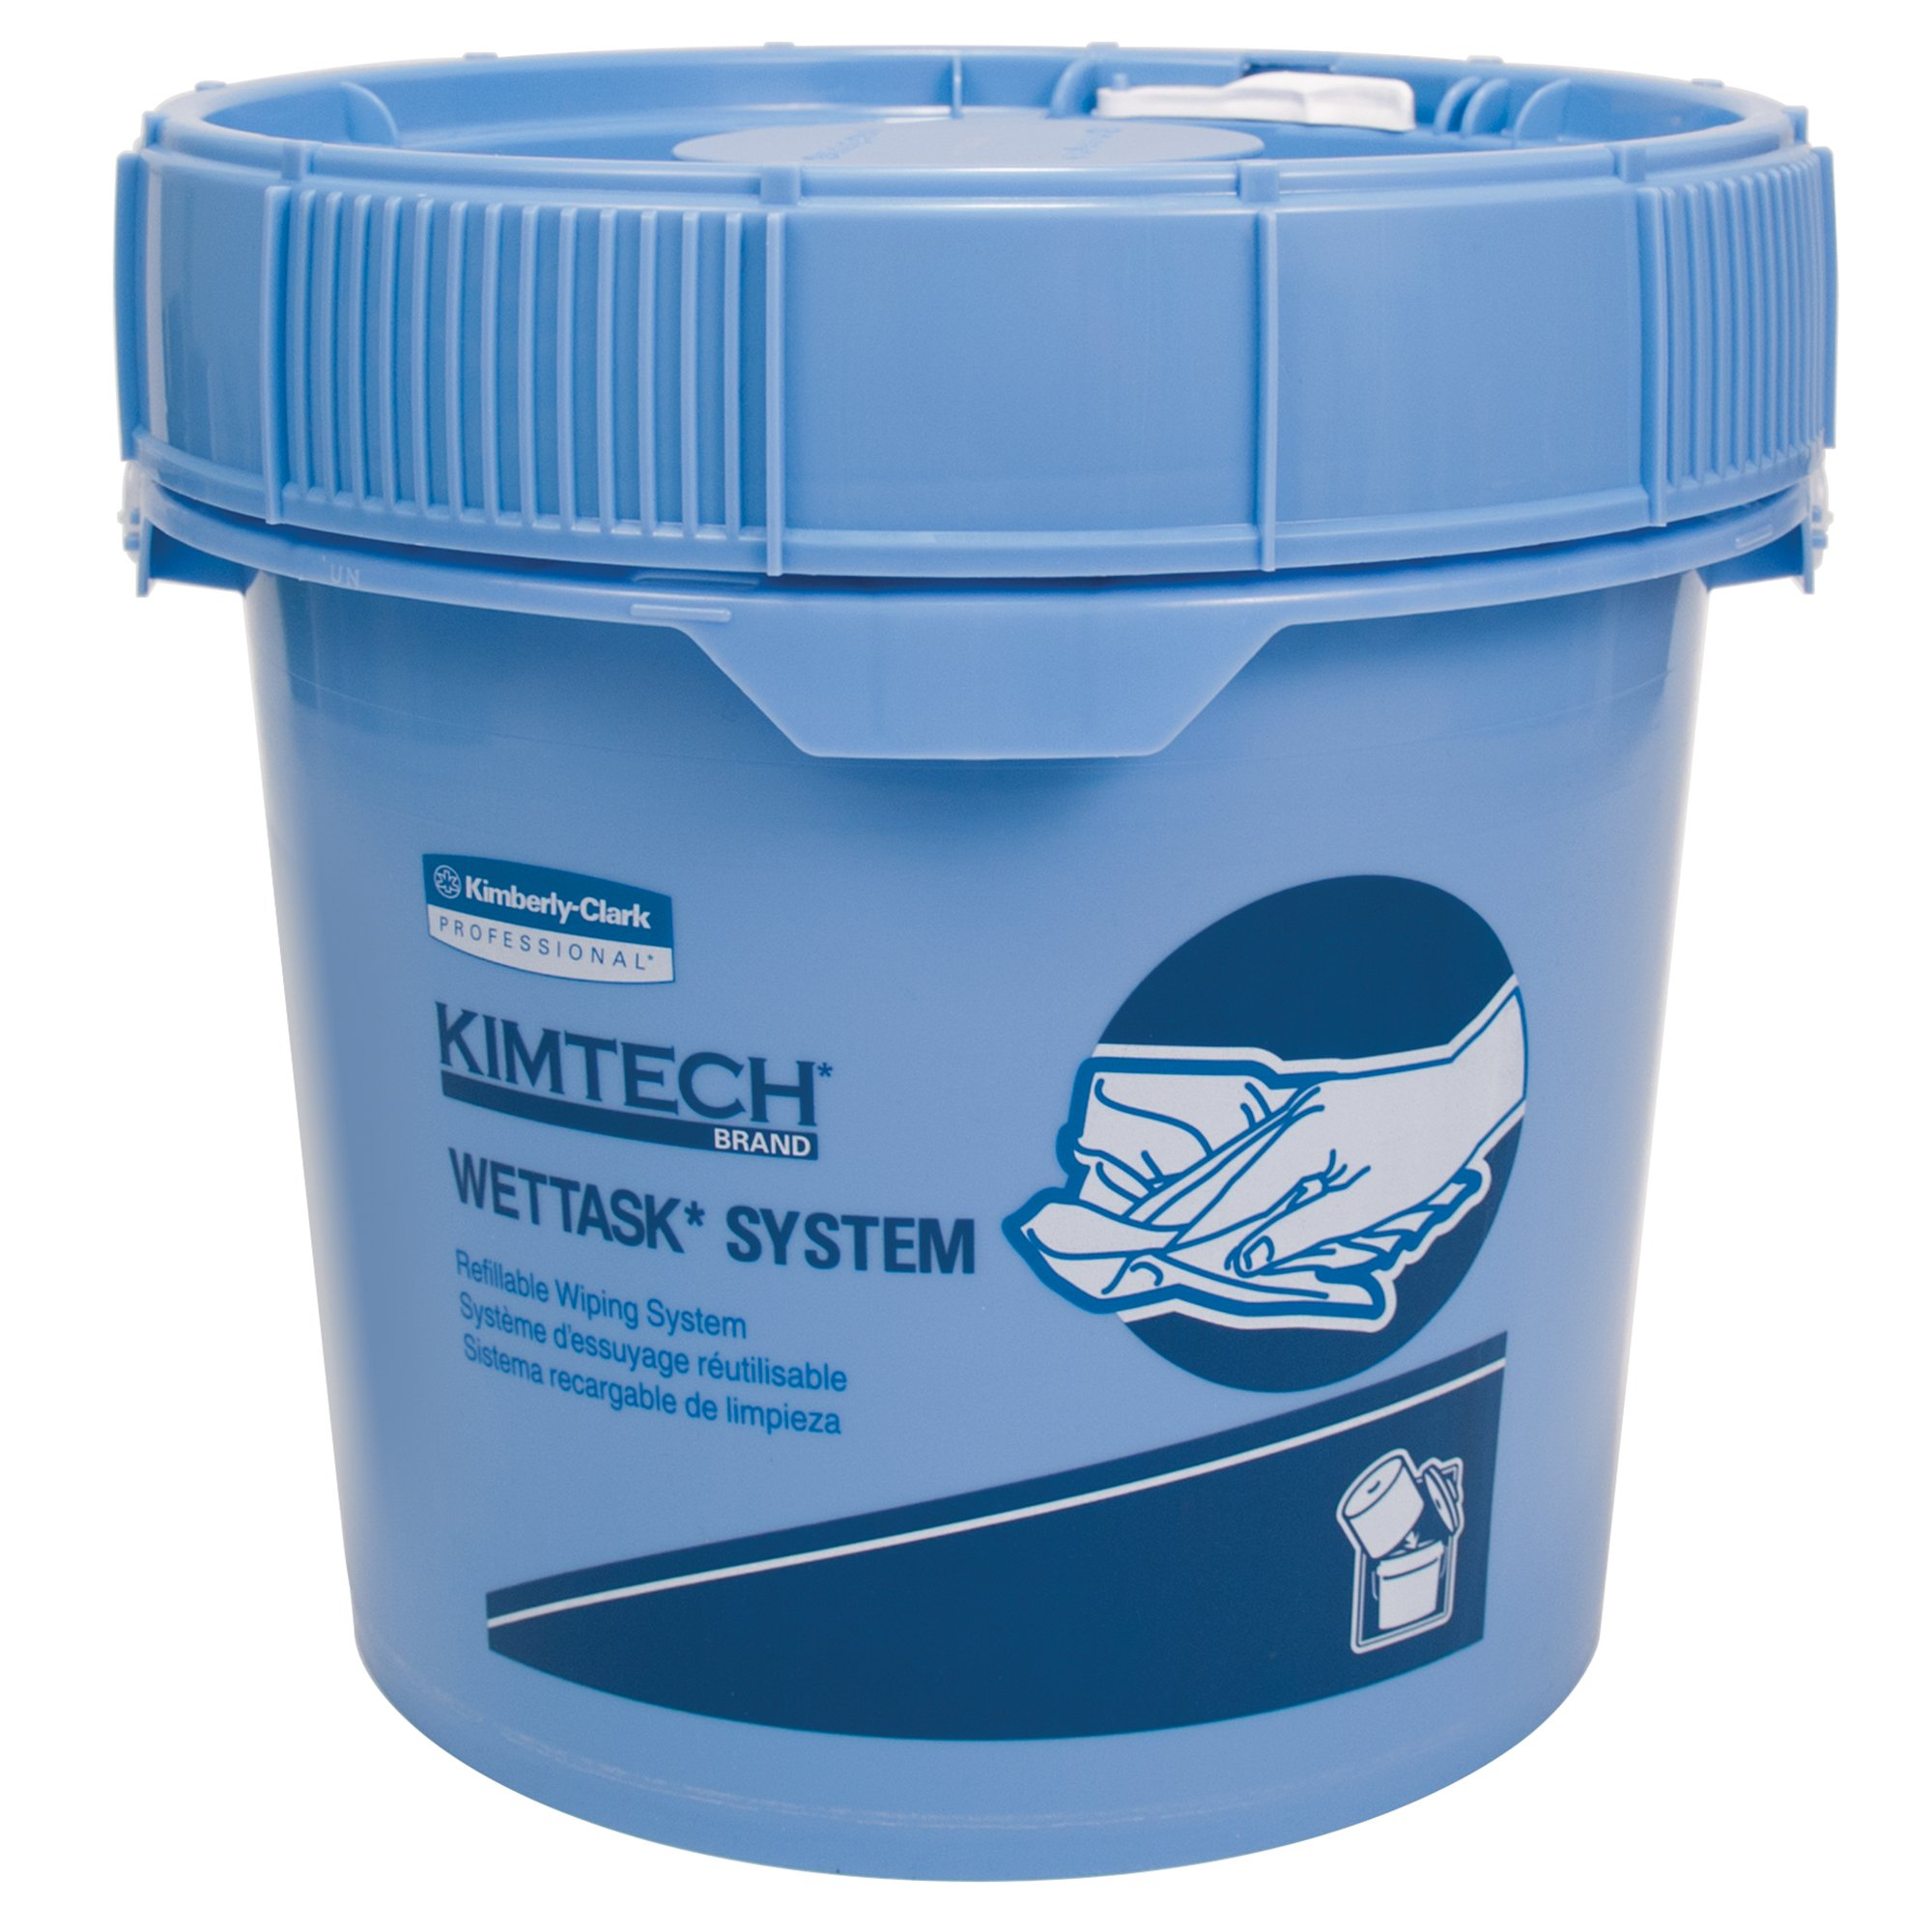 Kimtech Prep Wipers for the WetTask Wiping System Bucket (09361), Large Format Hygienic Enclosed System, 3.5 Gallon, 2 Buckets / Case